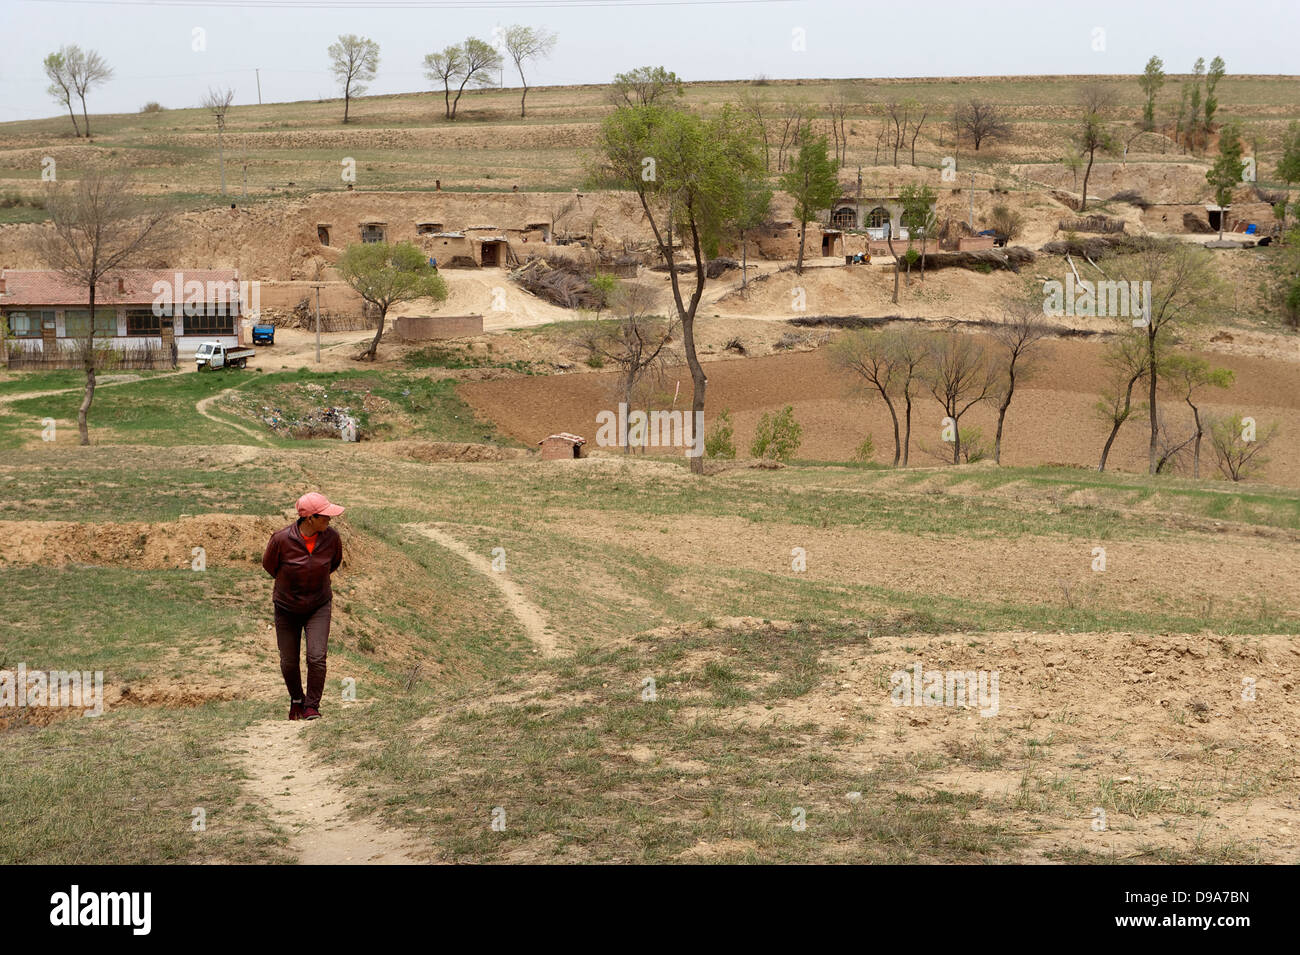 Un habitat troglodytique village de Qingshuihe county en Mongolie intérieure en Chine.11-mai-2011 Photo Stock